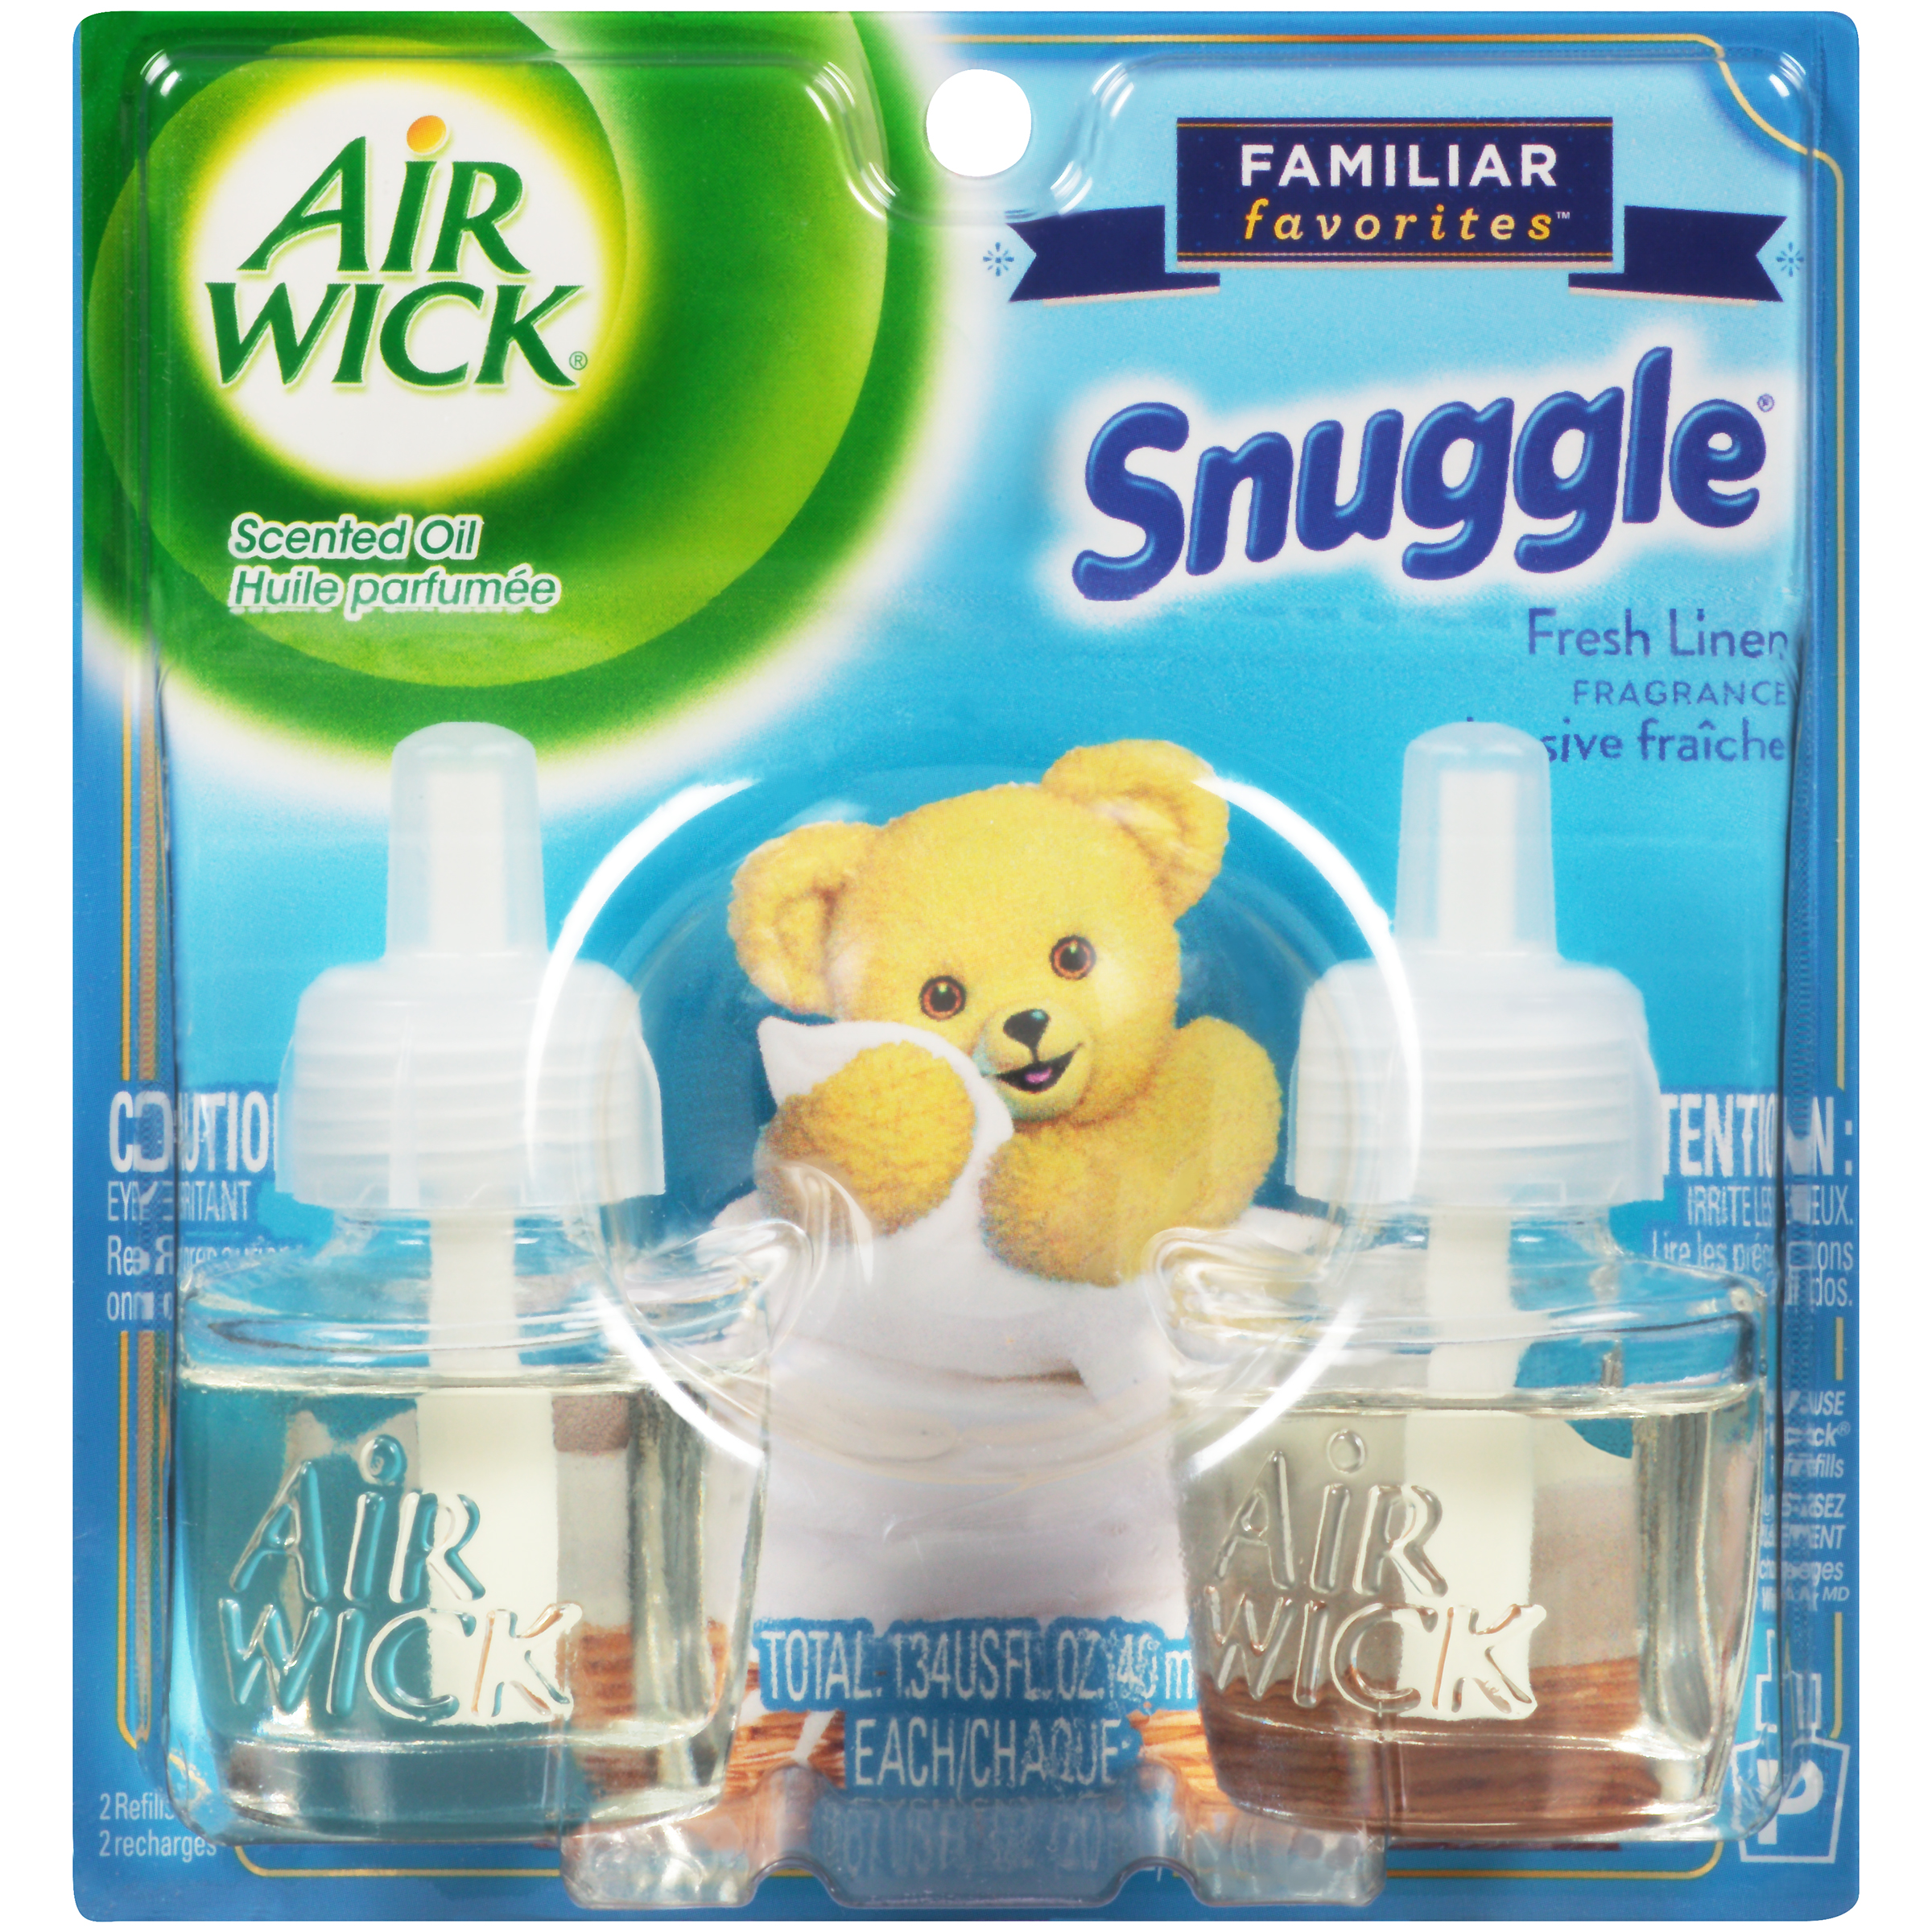 Airwick Scented Oil Snuggle Fresh Linen Air Freshener Refills 029W007359706001